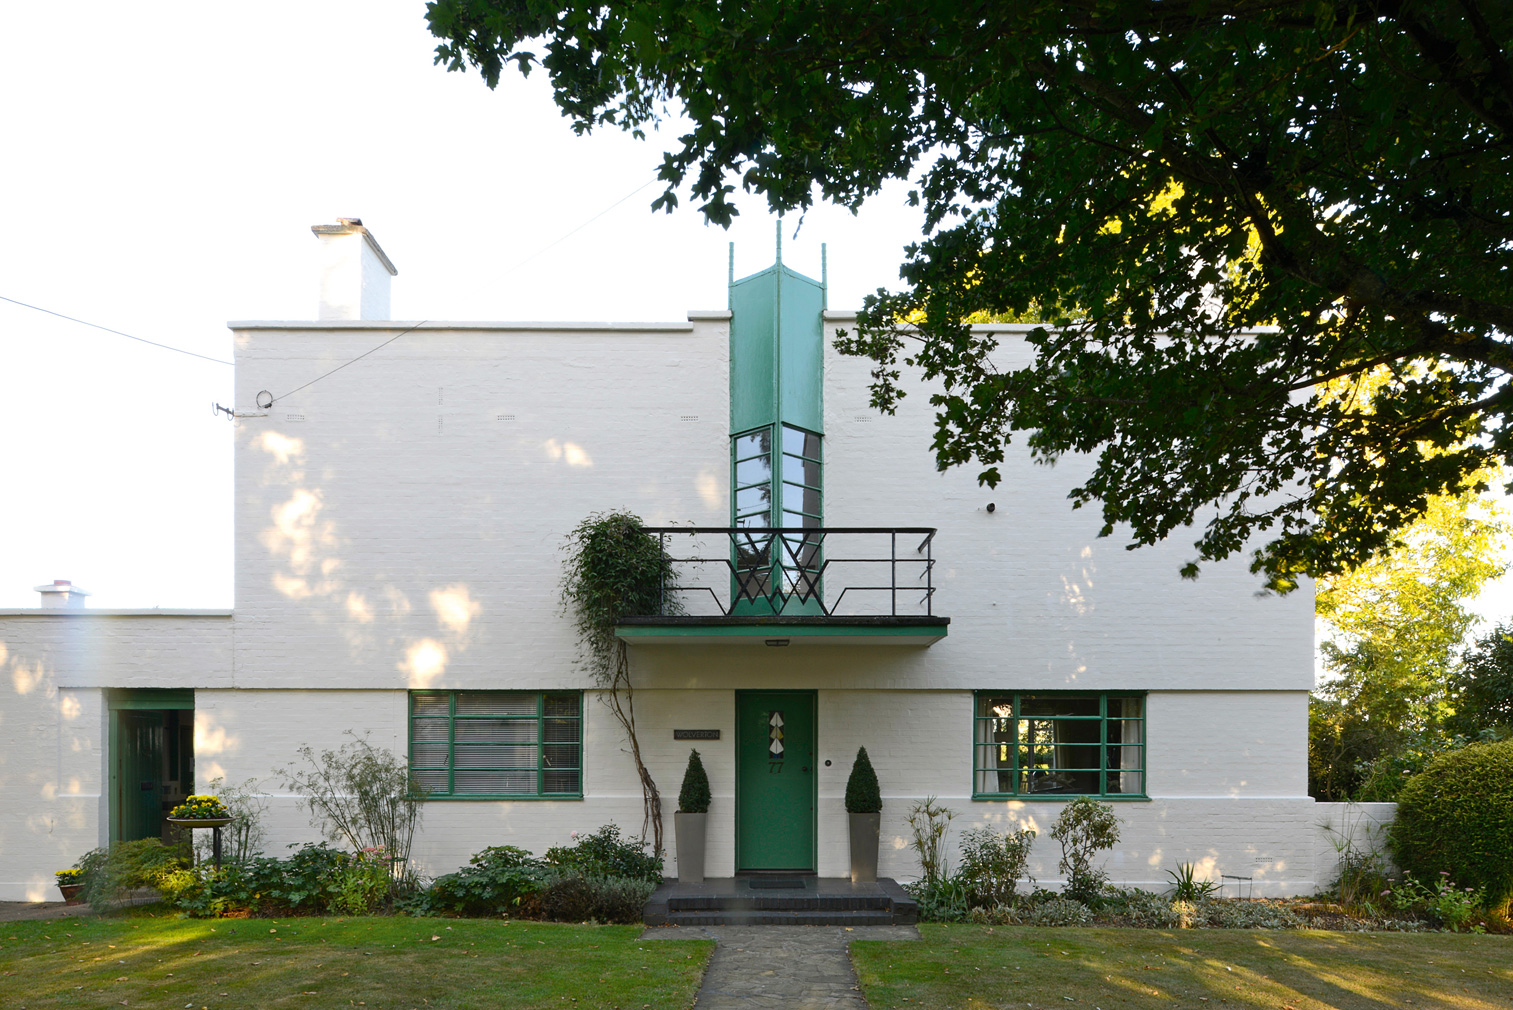 Wolverton House in Essex by architects Thomas Tait and Frederick McManus (1927). Photography: Elain Harwood (c) 2019